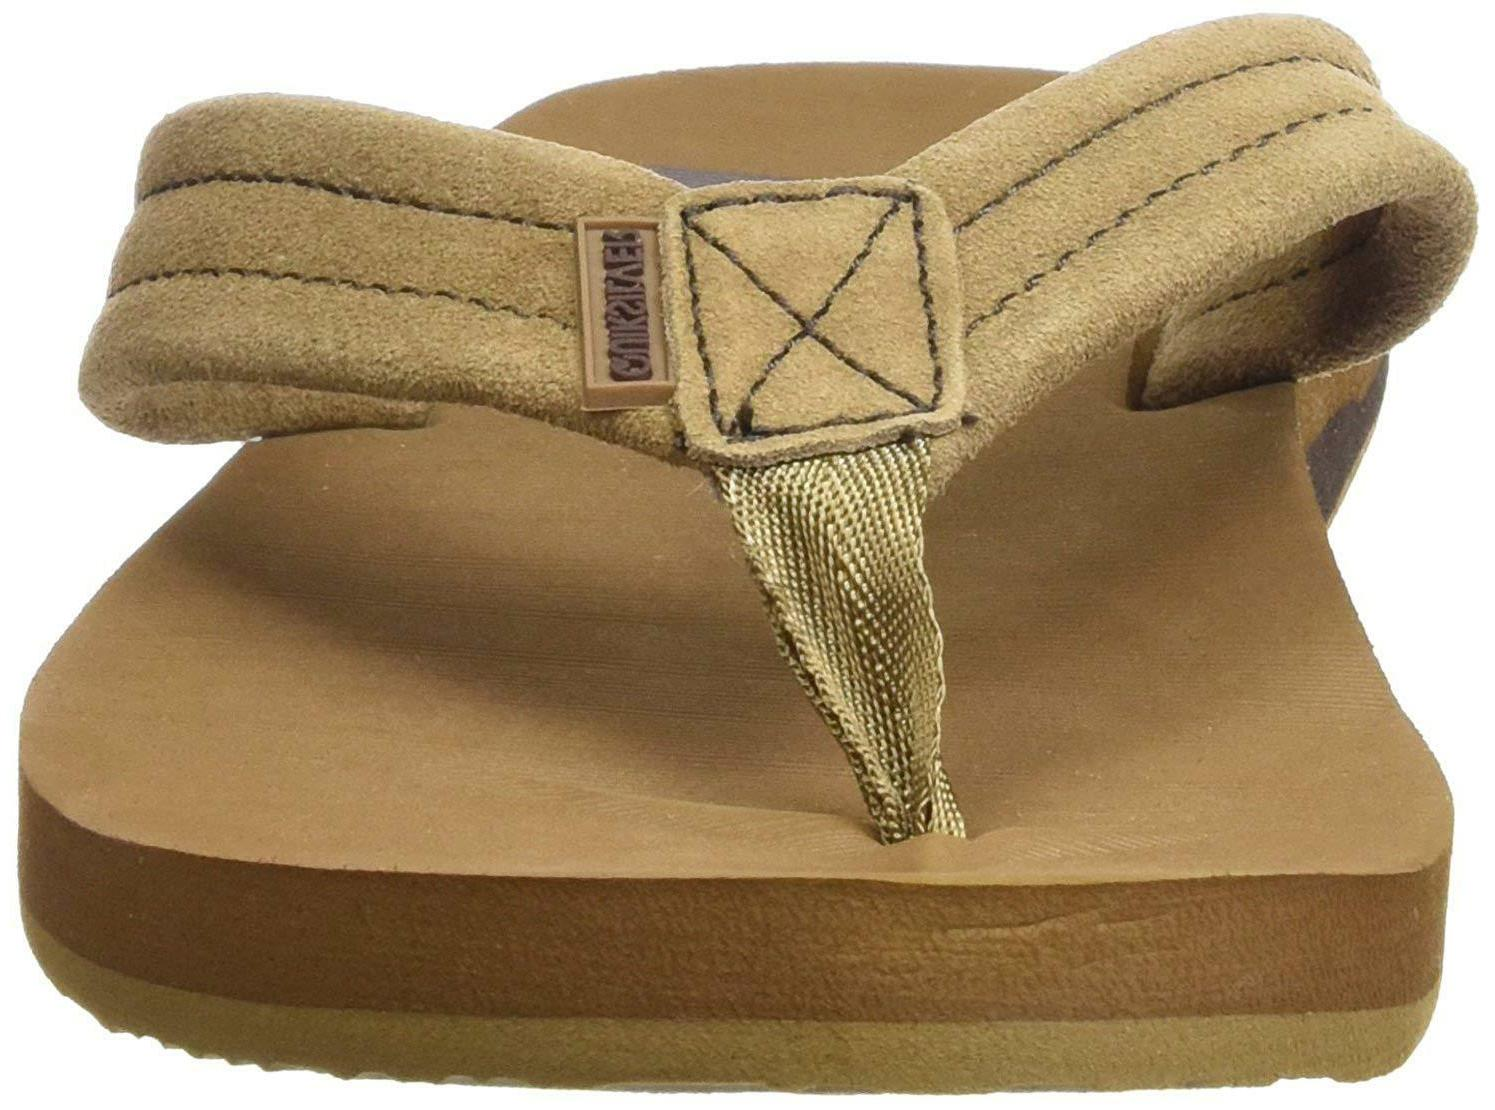 Quiksilver Carver 3-Point Flip-Flop